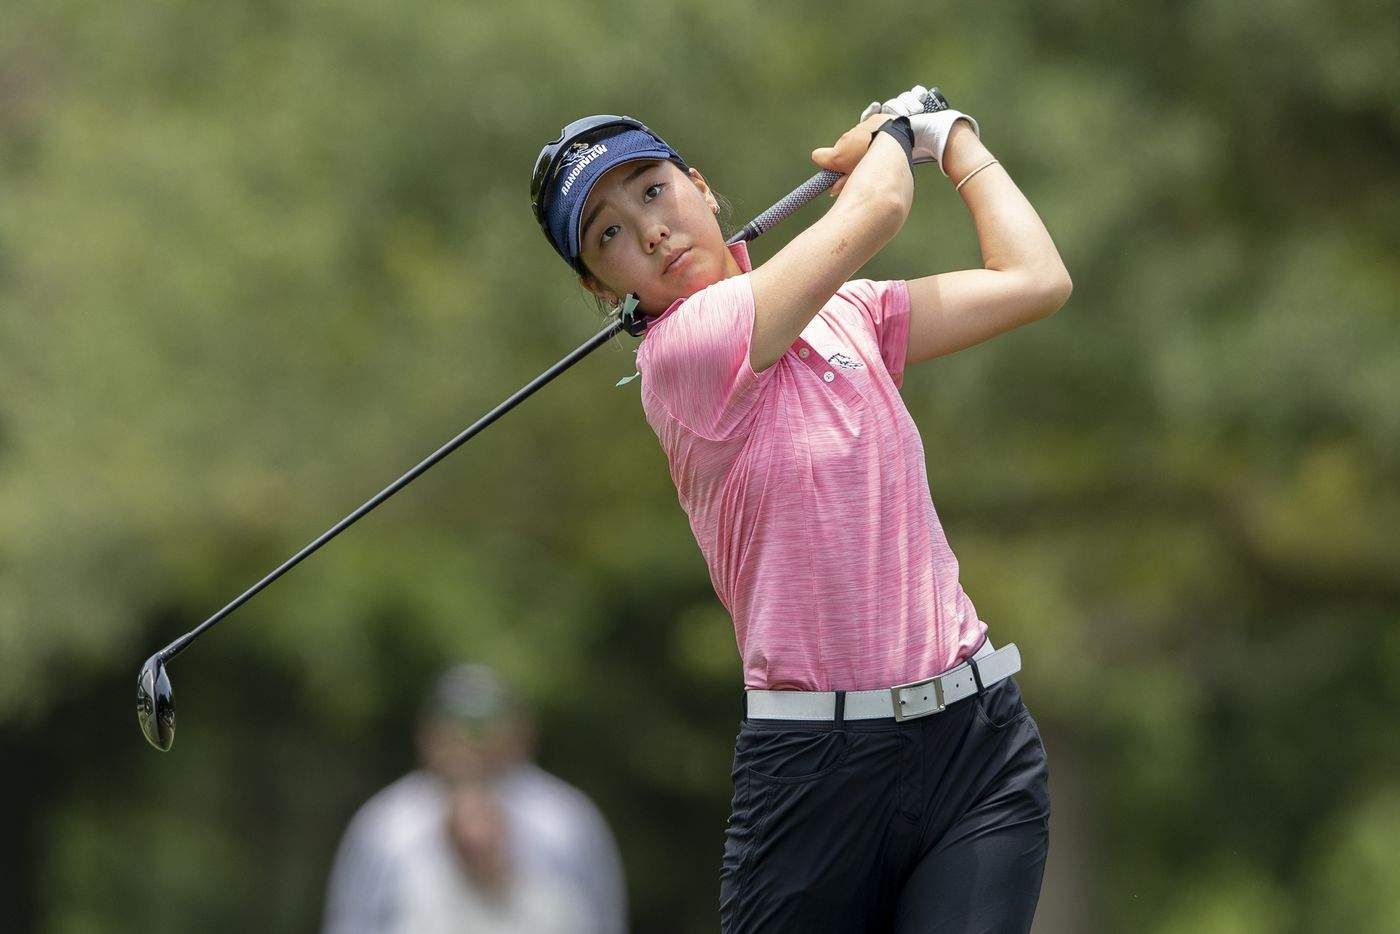 Carrollton Ranchview's Bohyun Park hits from the 12th tee box during the final day of the UIL Class 4A girls golf tournament in Kyle, Tuesday, May 11, 2021. (Stephen Spillman/Special Contributor)